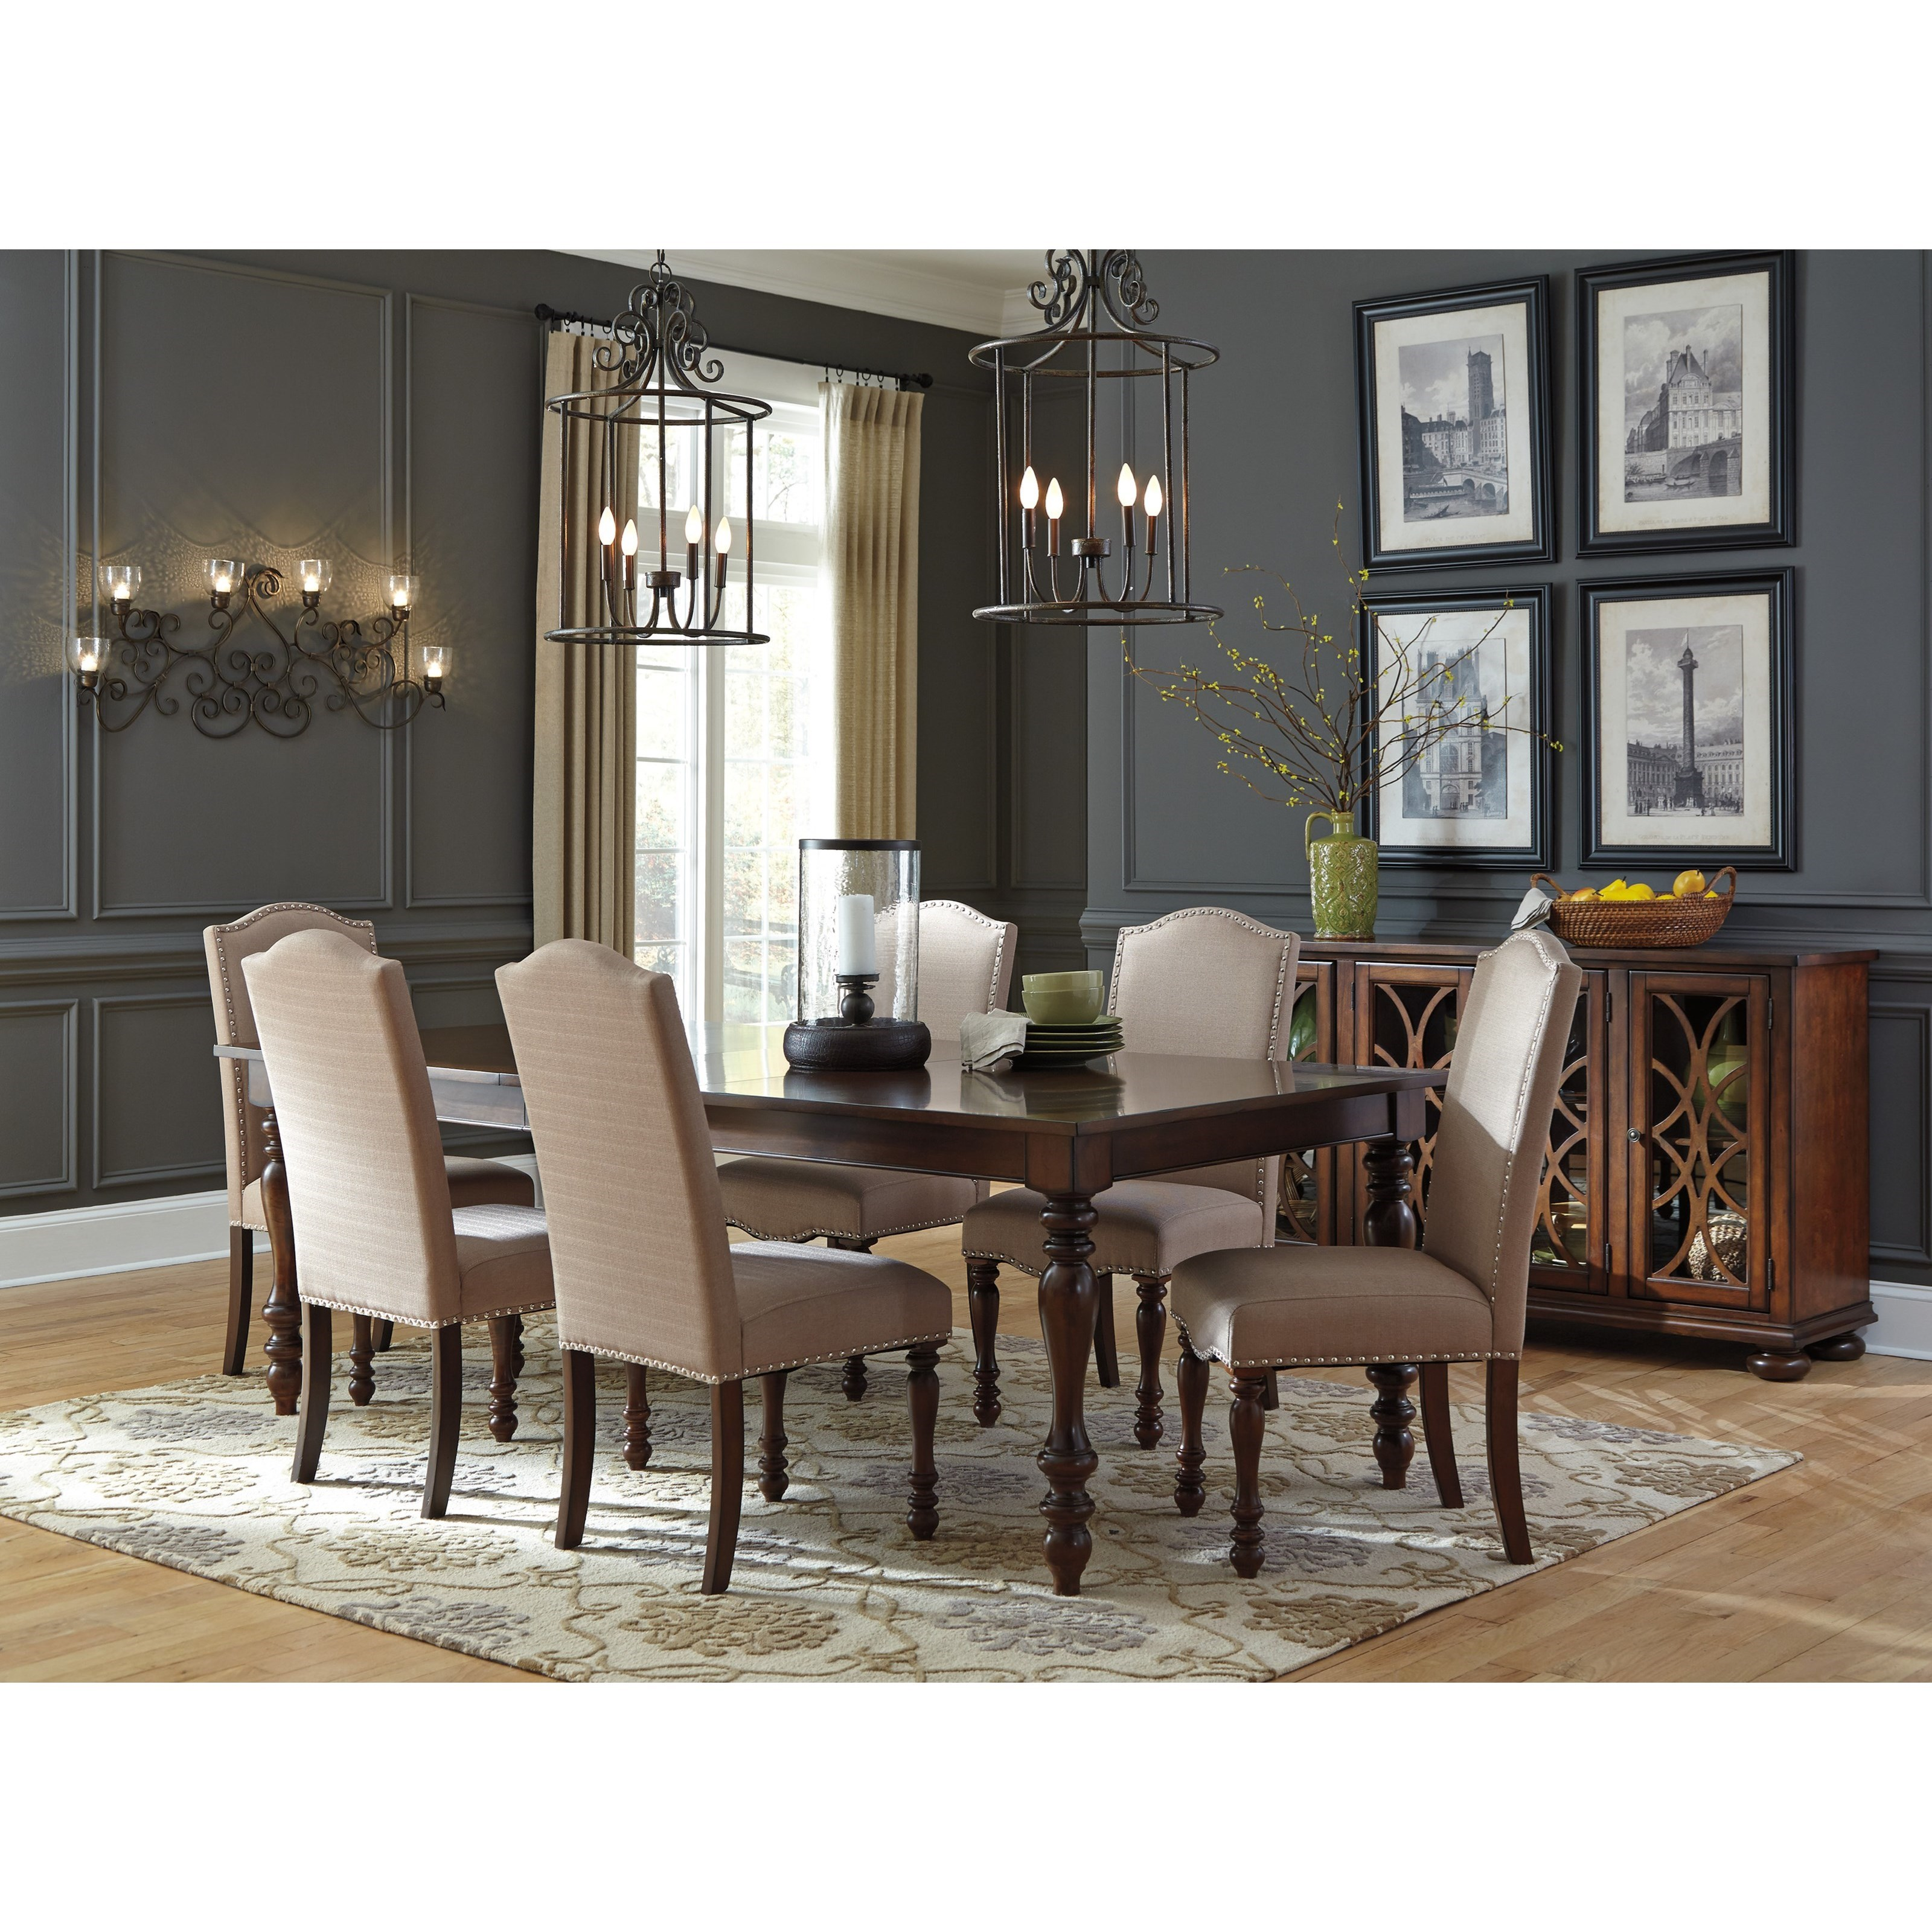 Ashley Dining Room Chairs Signature Design By Ashley Baxenburg 7 Piece Dining Room